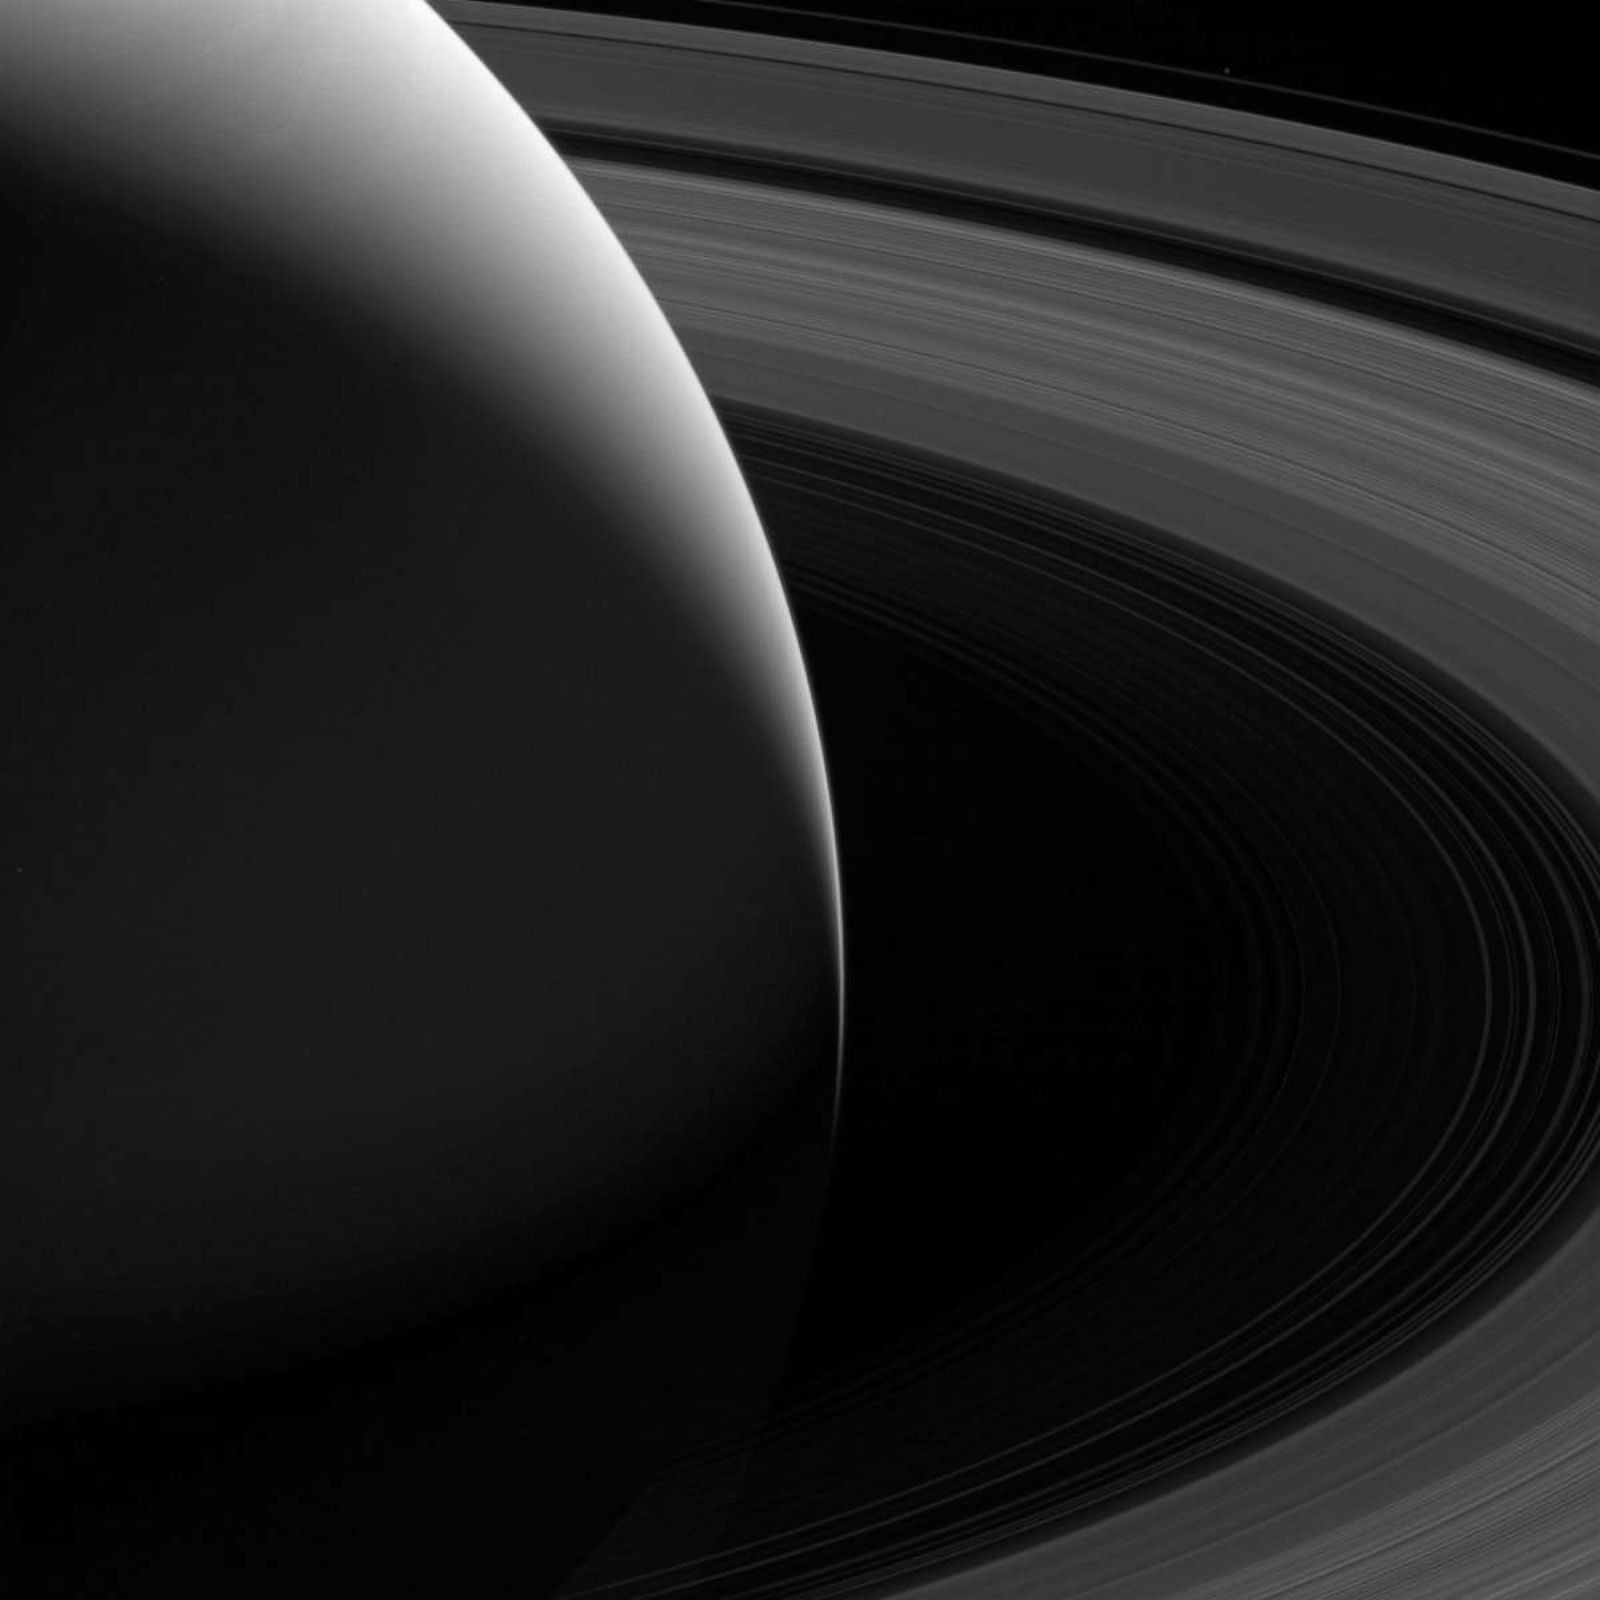 Mind-blowing images of Saturn from the Cassini orbiter